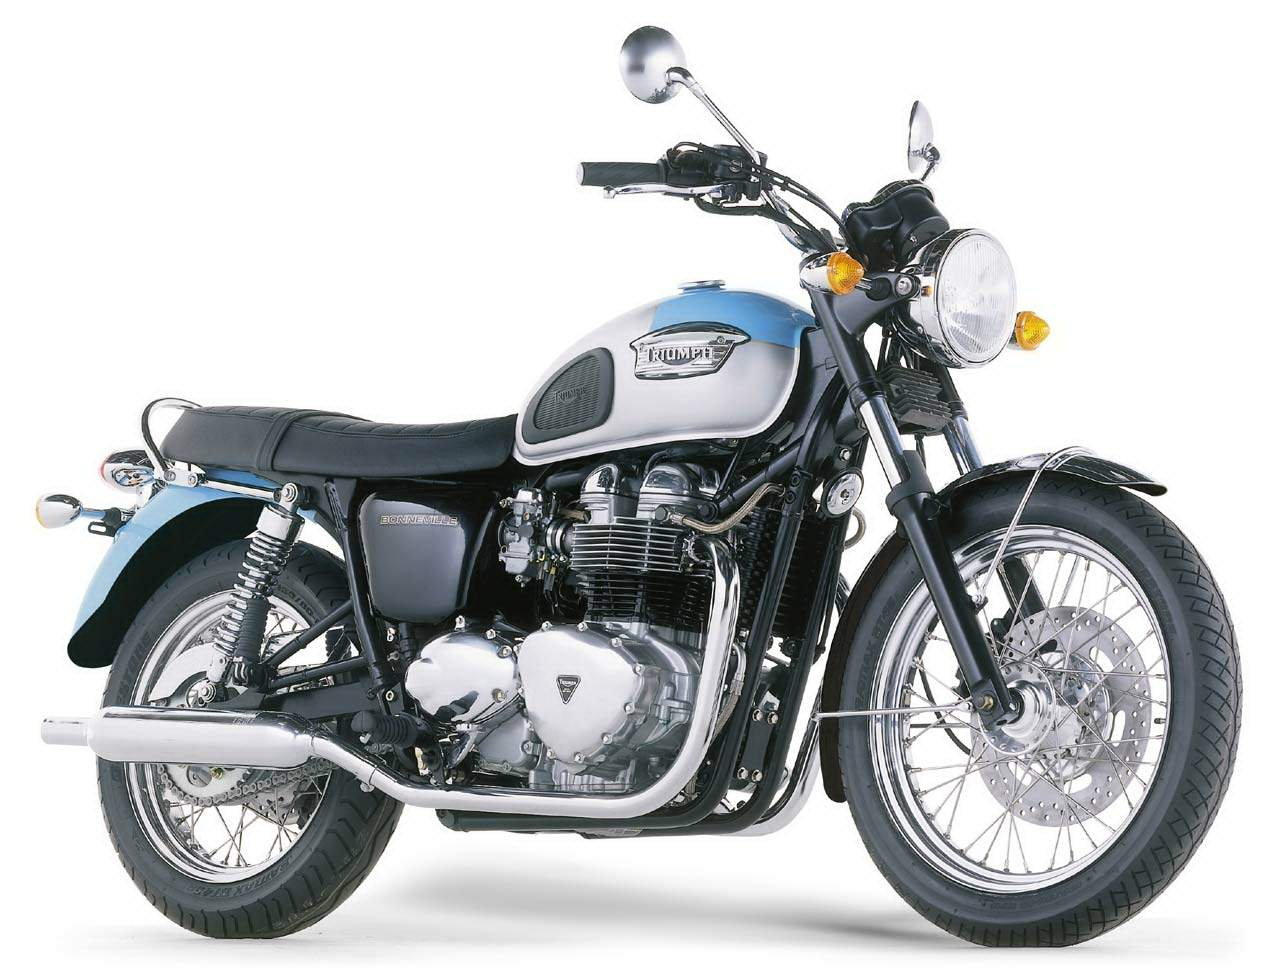 2004 Triumph 800 Bonneville Service Manual